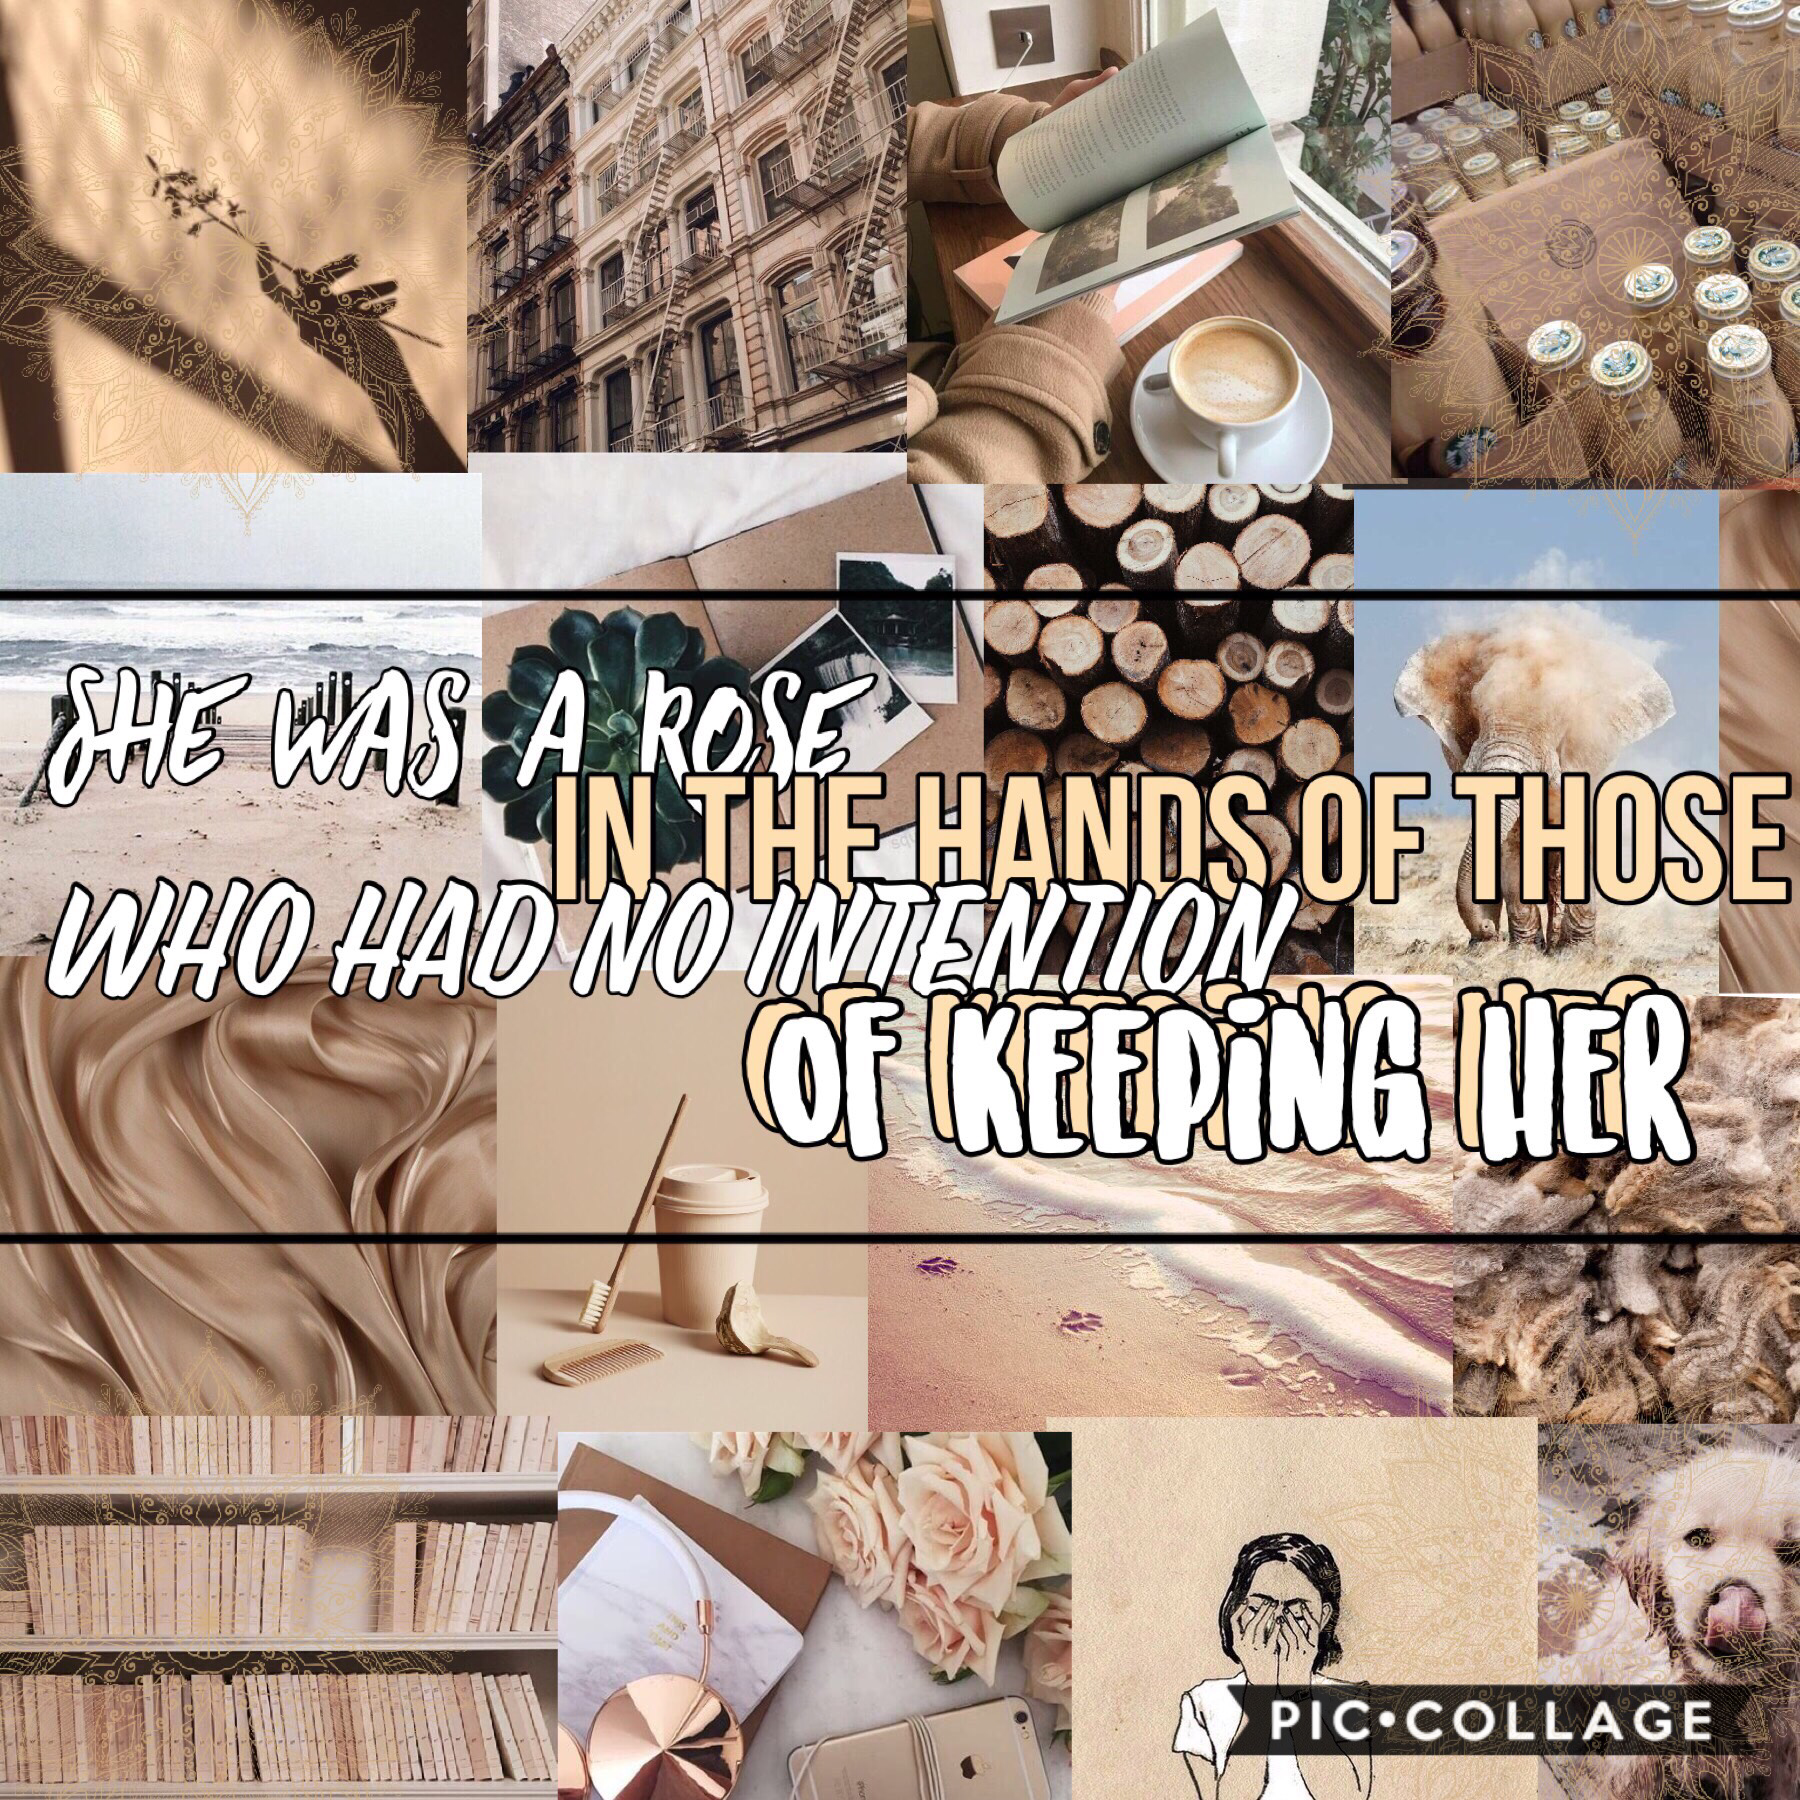 Hey guys!!!!❤️🦄😍😘🥳😜😊I tried out a different style on this one, I hope you like it!❤️❤️❤️❤️I really like the quote though!😁 QOTD: Do you like beige??😝 AOTD: Kind of!☺️